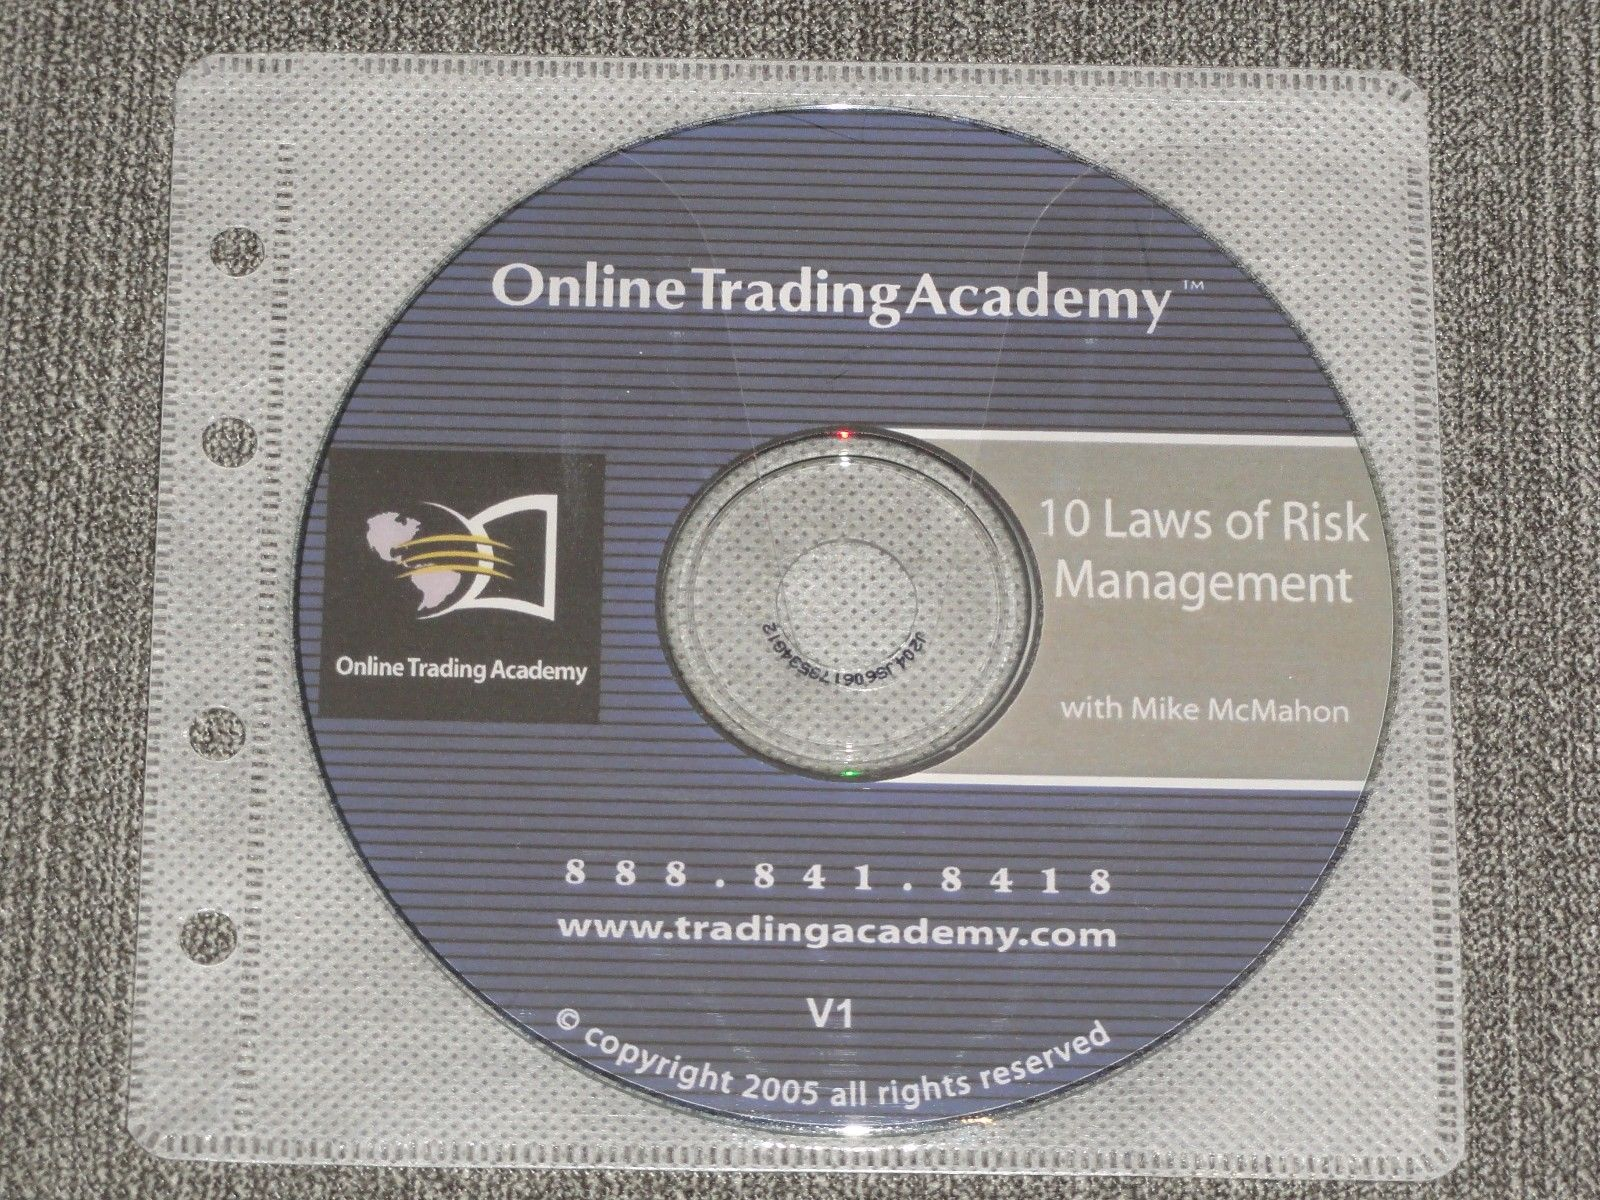 Online Trading Academy Mike McMahon 10 Laws of Risk Management CD stocks options